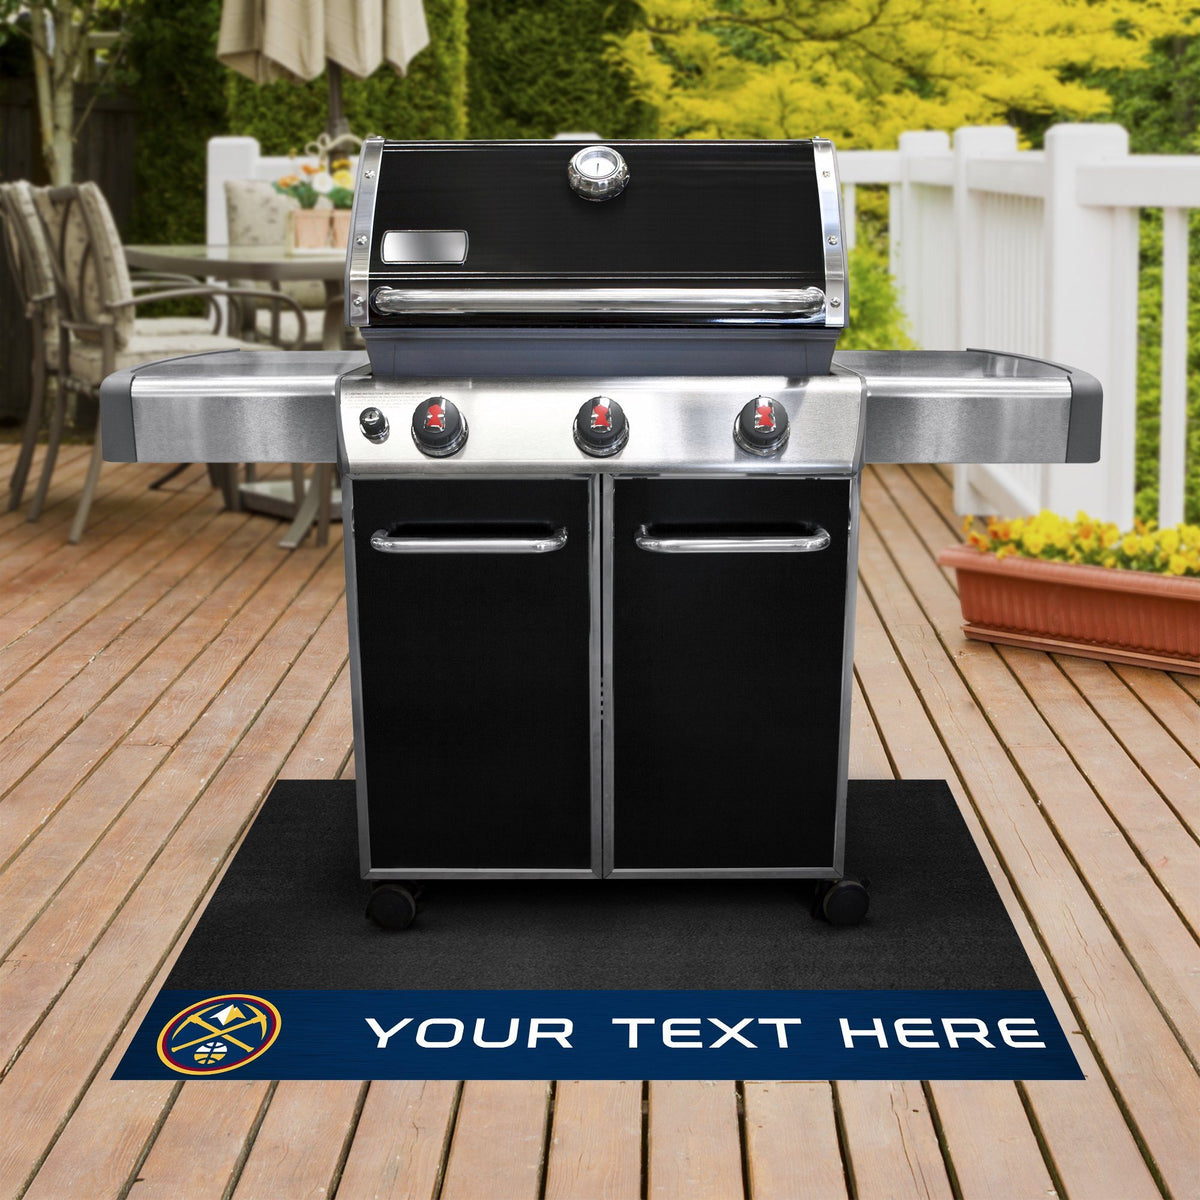 NBA Personalized Grill Mat Personalized Grill Mat Fan Mats Denver Nuggets